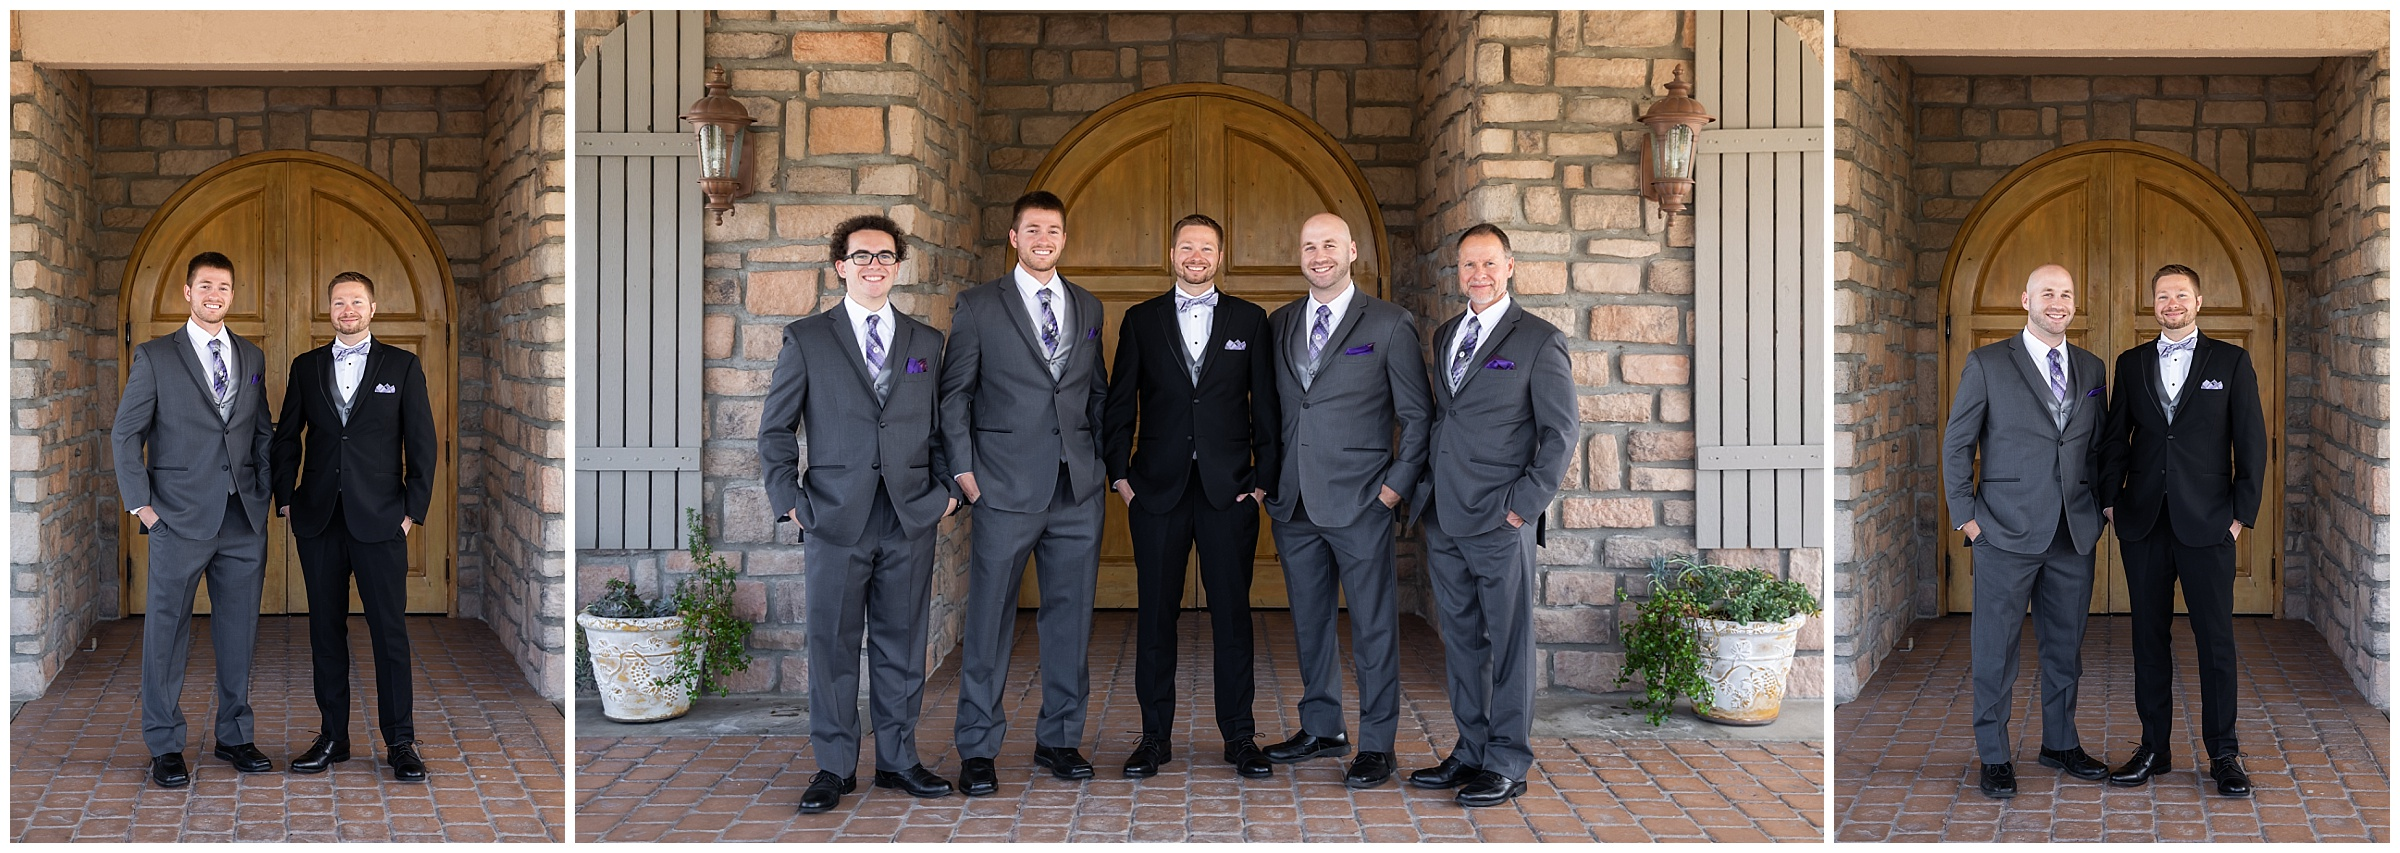 The guys looked so sharp! I loved the contrast of the grey and black.